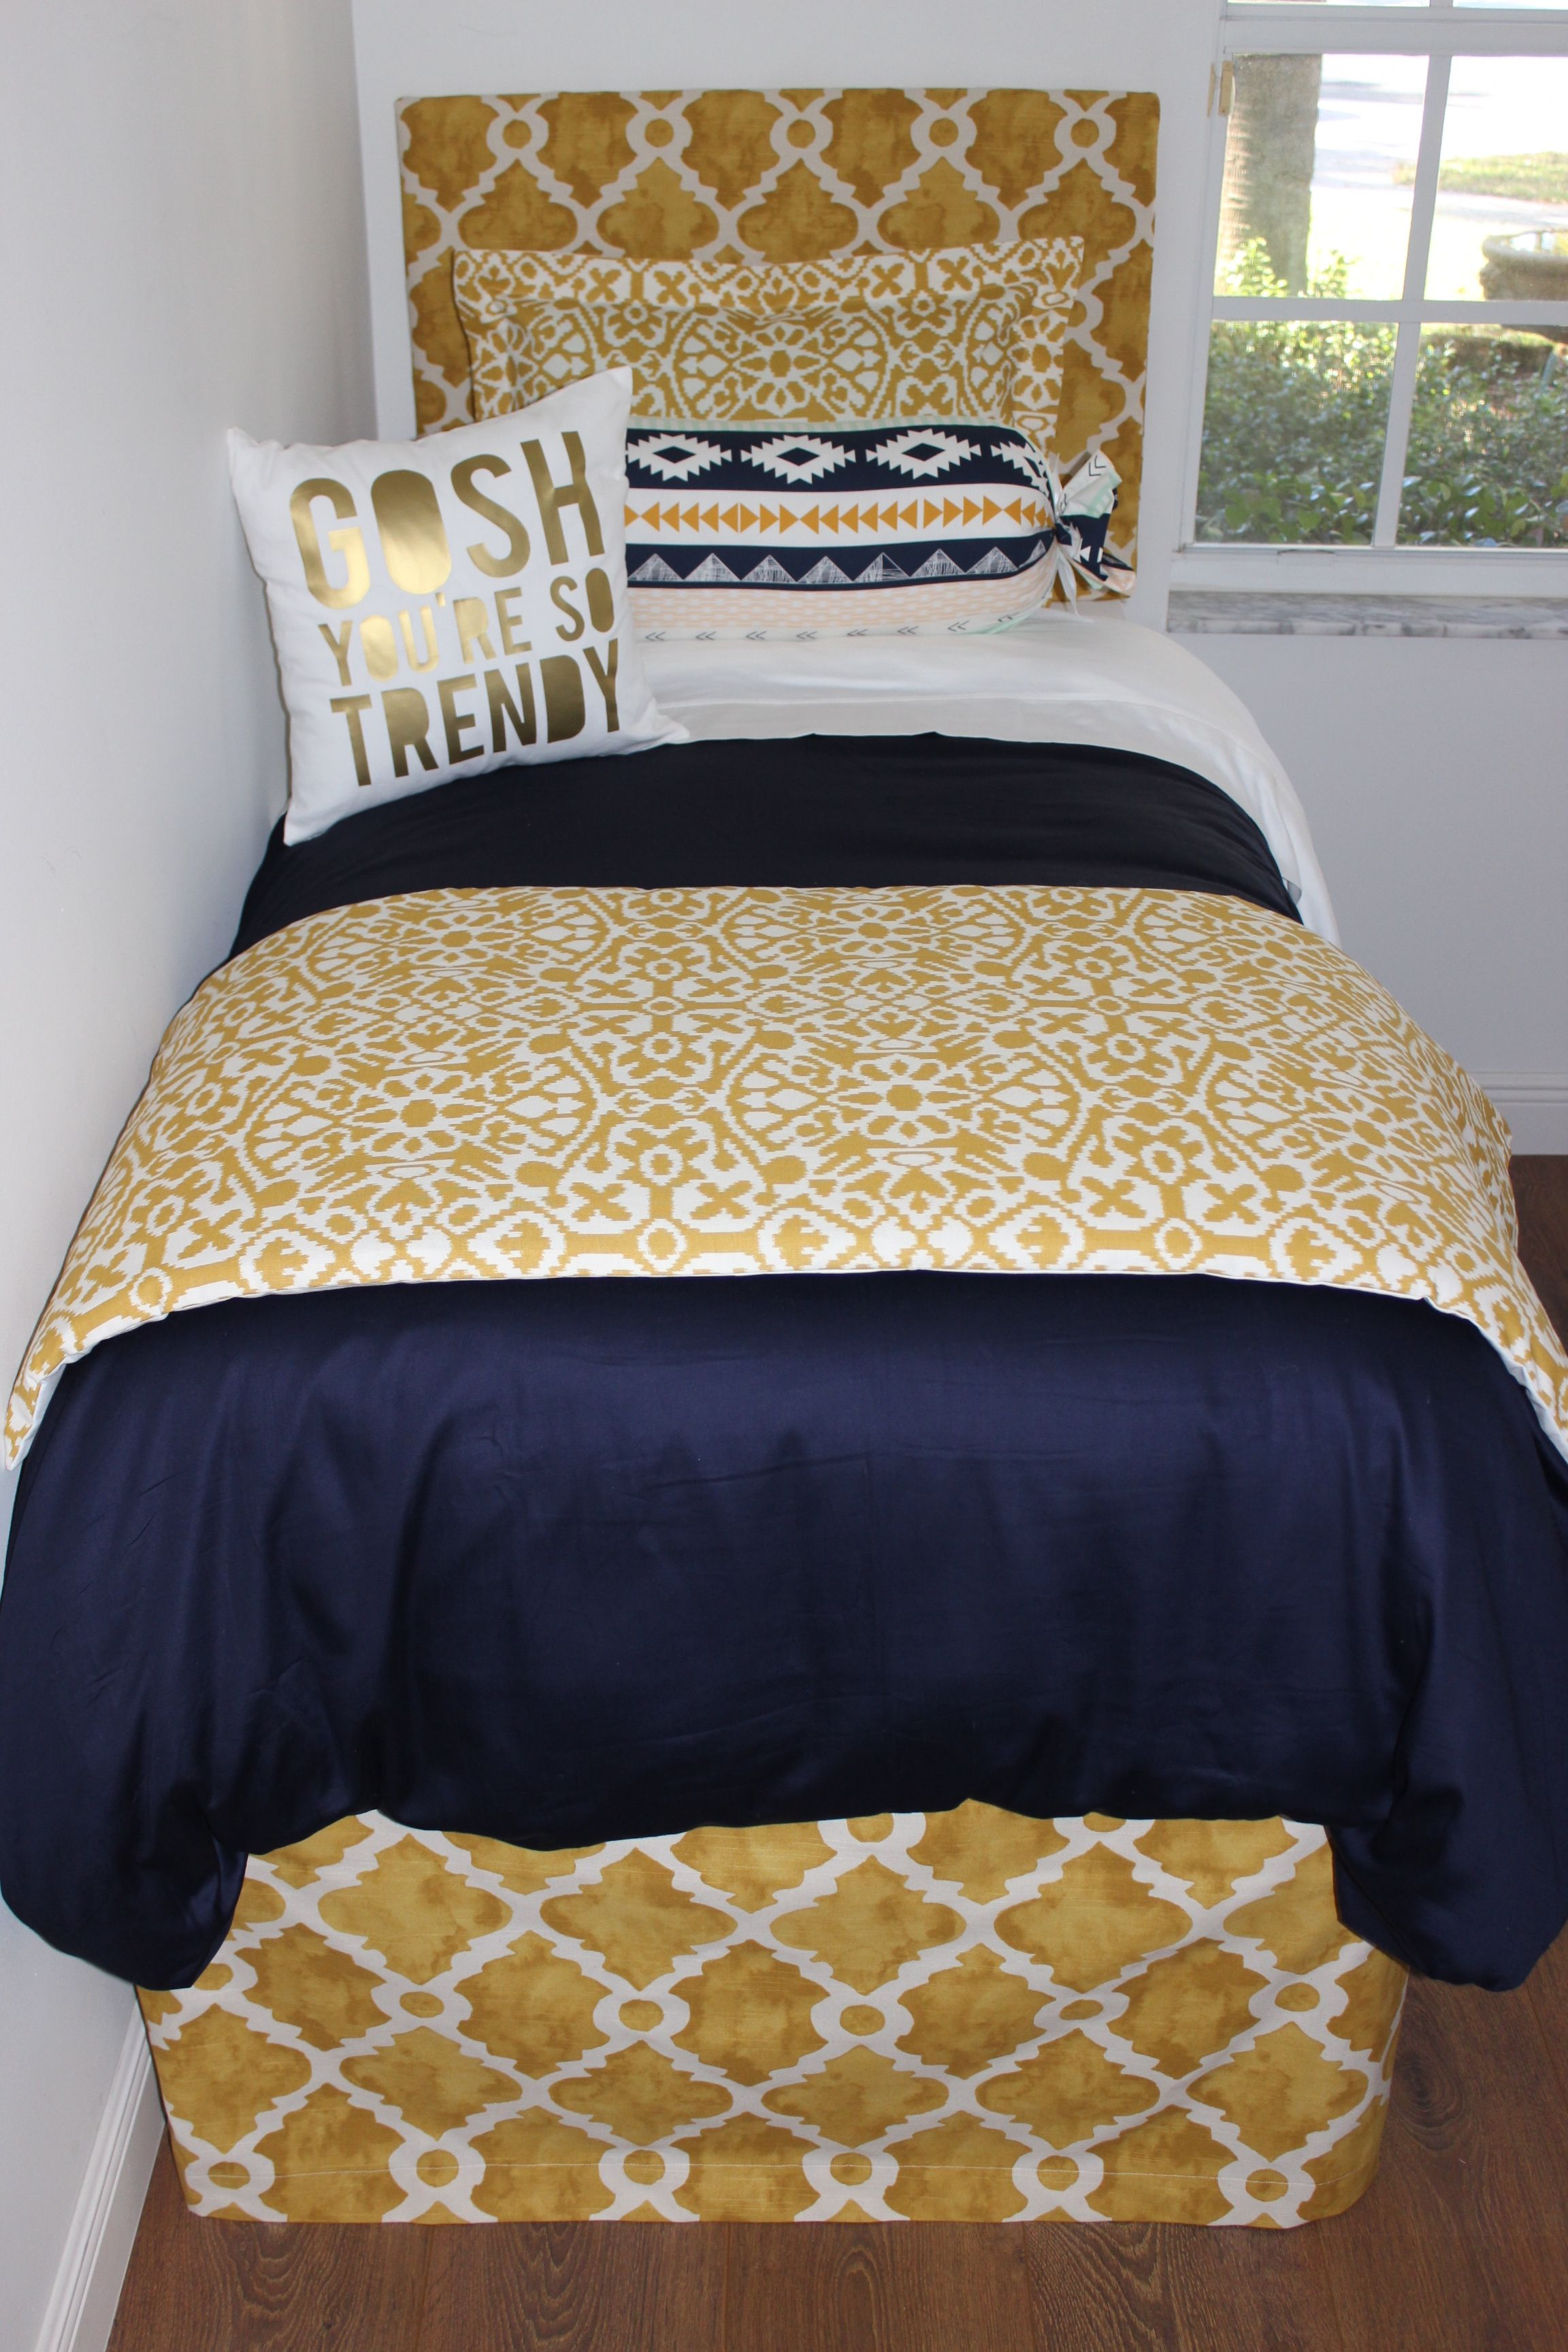 Hot New Dorm Bedding Trendy Tribal Peach And Mint Love